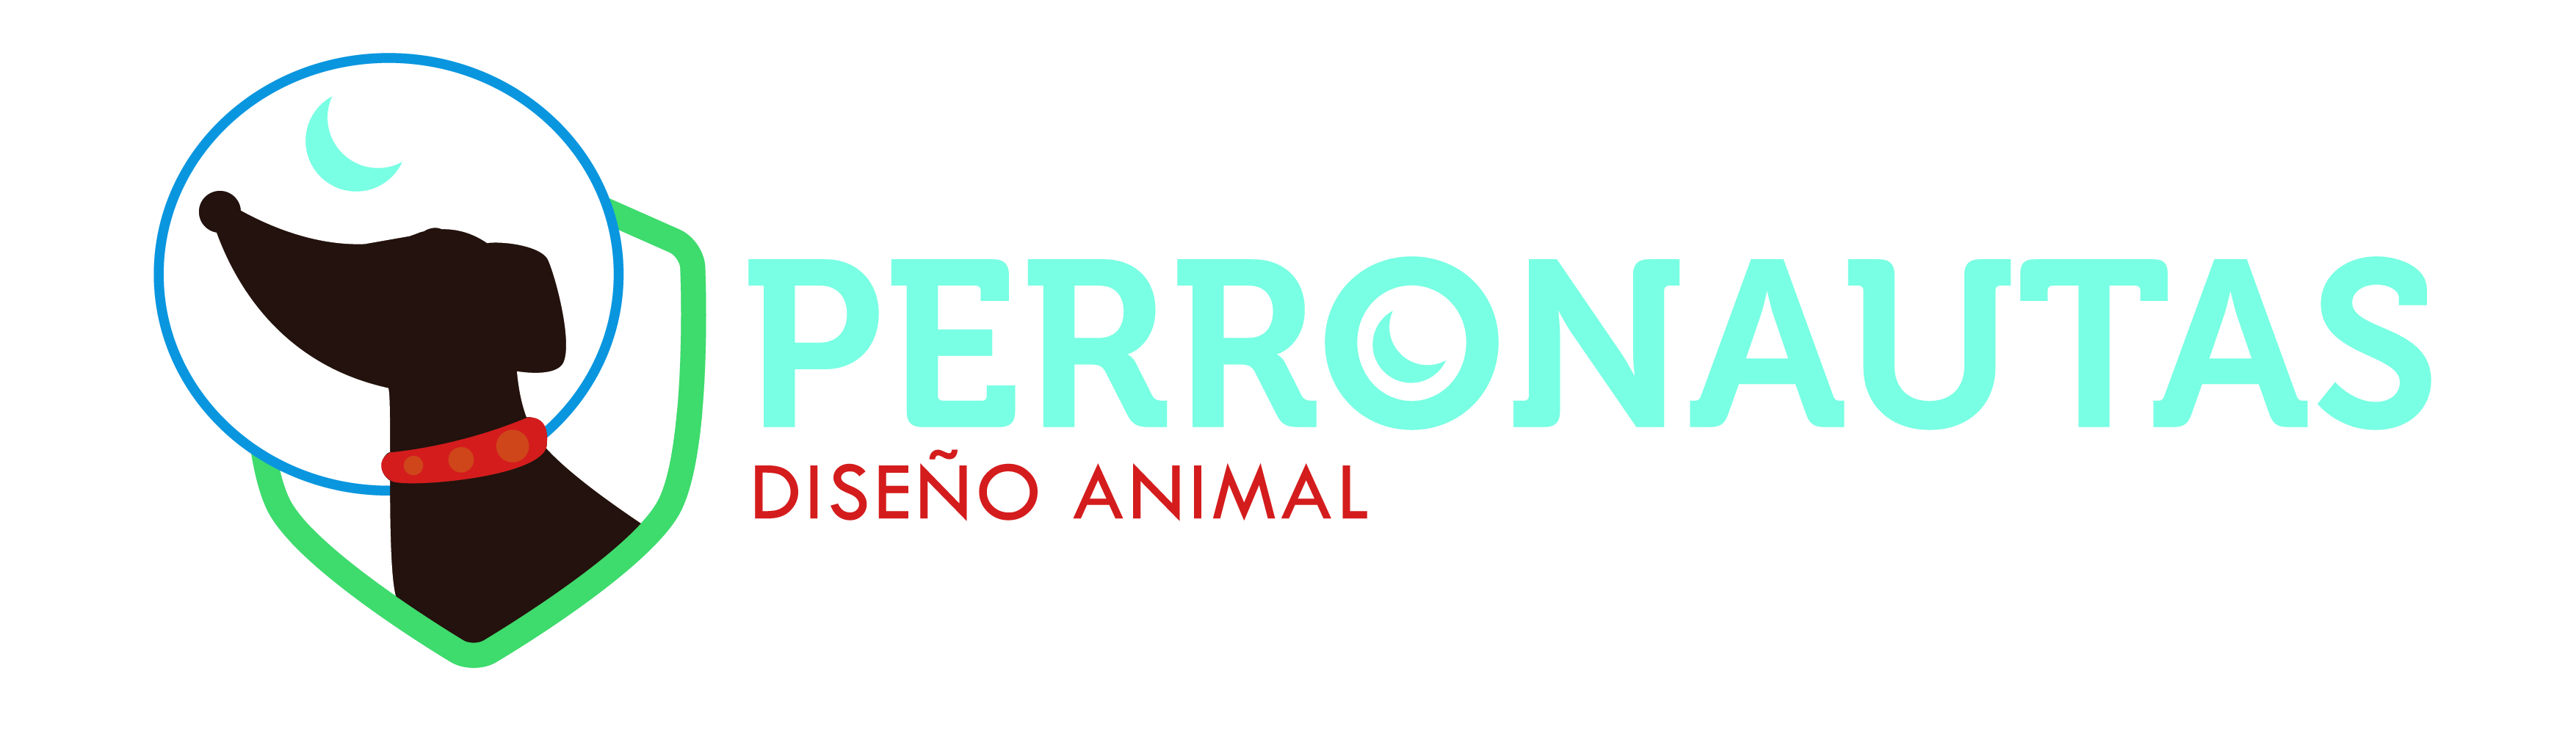 Perronautas.Diseño Animal